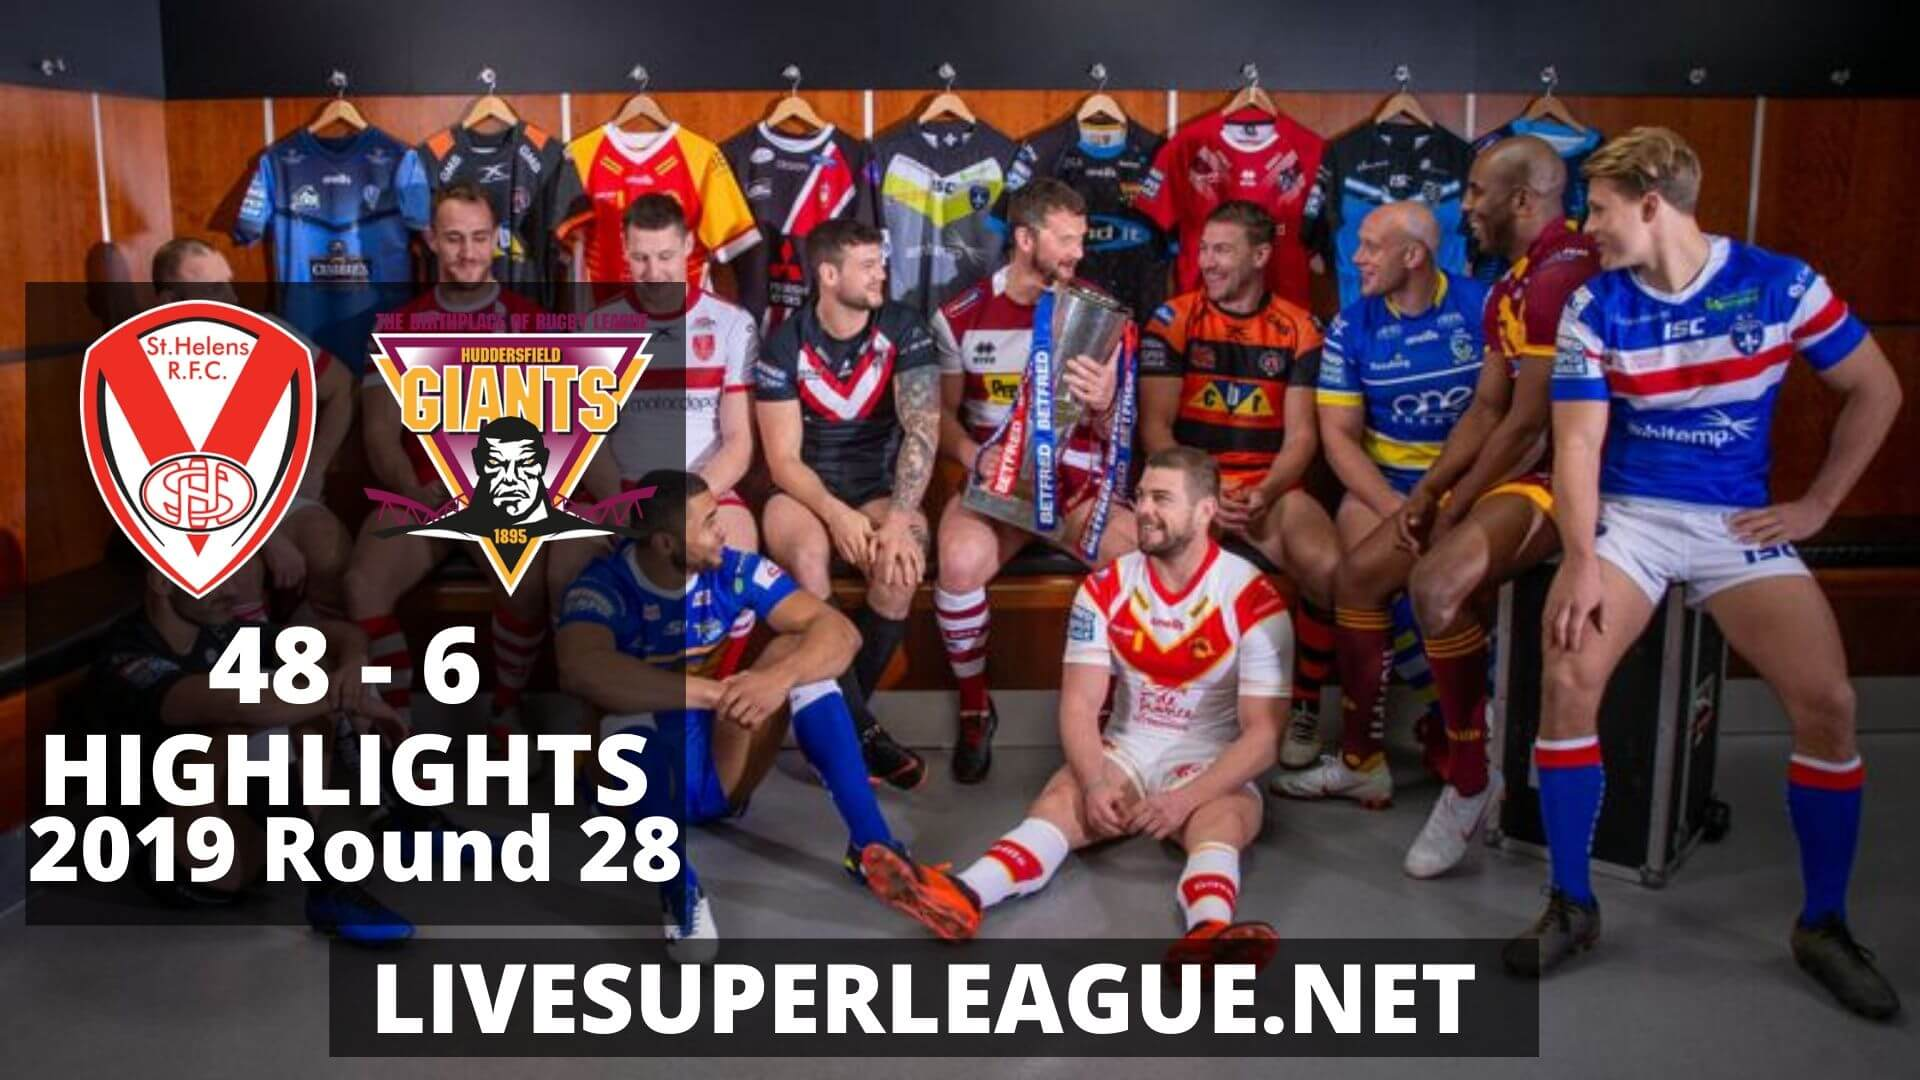 St Helens Vs Huddersfield Giants Highlights 2019 Round 28